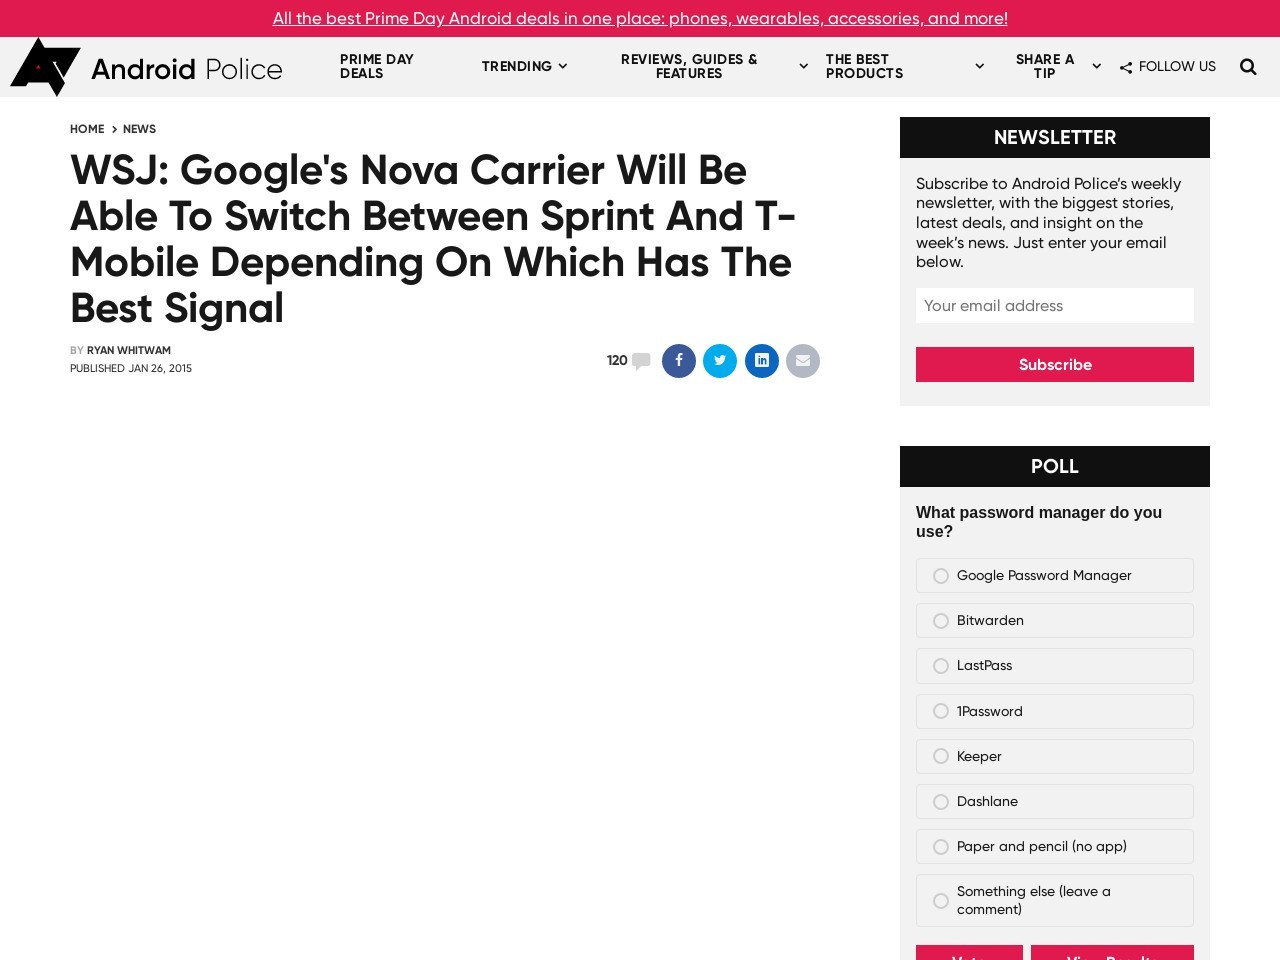 WSJ: Google's Nova Carrier Will Be Able To Switch …